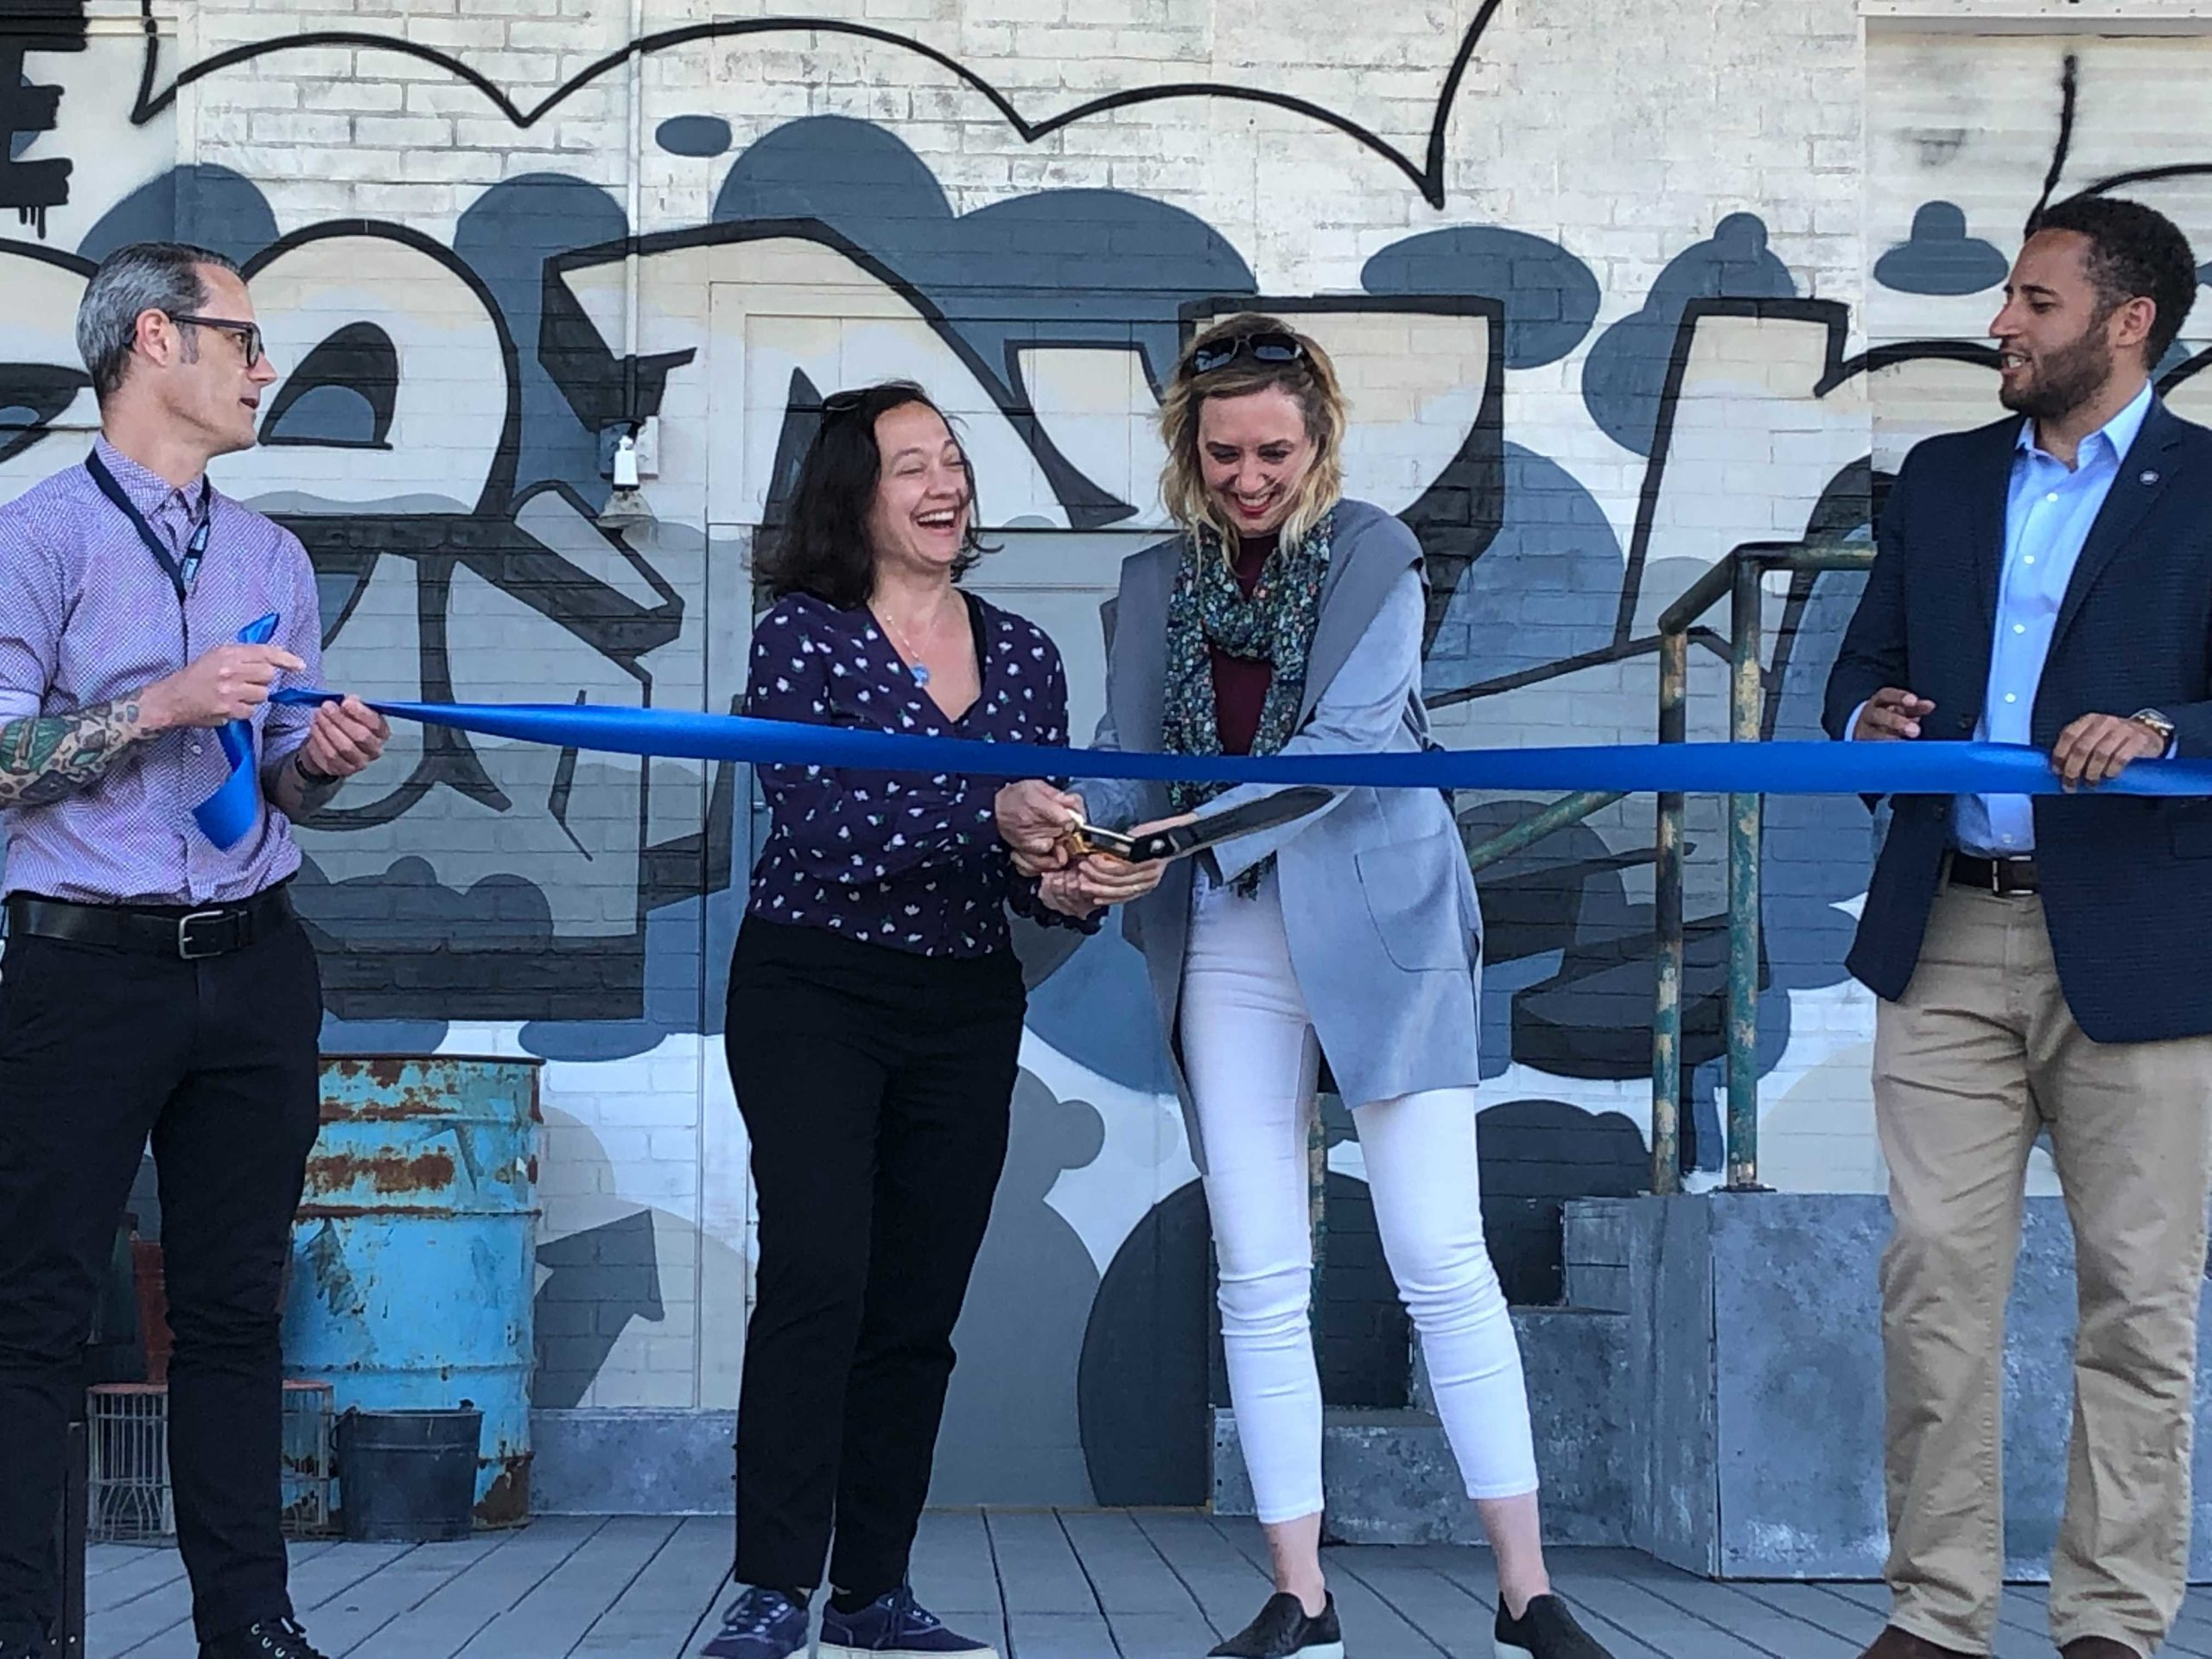 Ribbon cutting ceremony for the Hangar Theatre's outdoor stage (Michael Memis/WRFI)